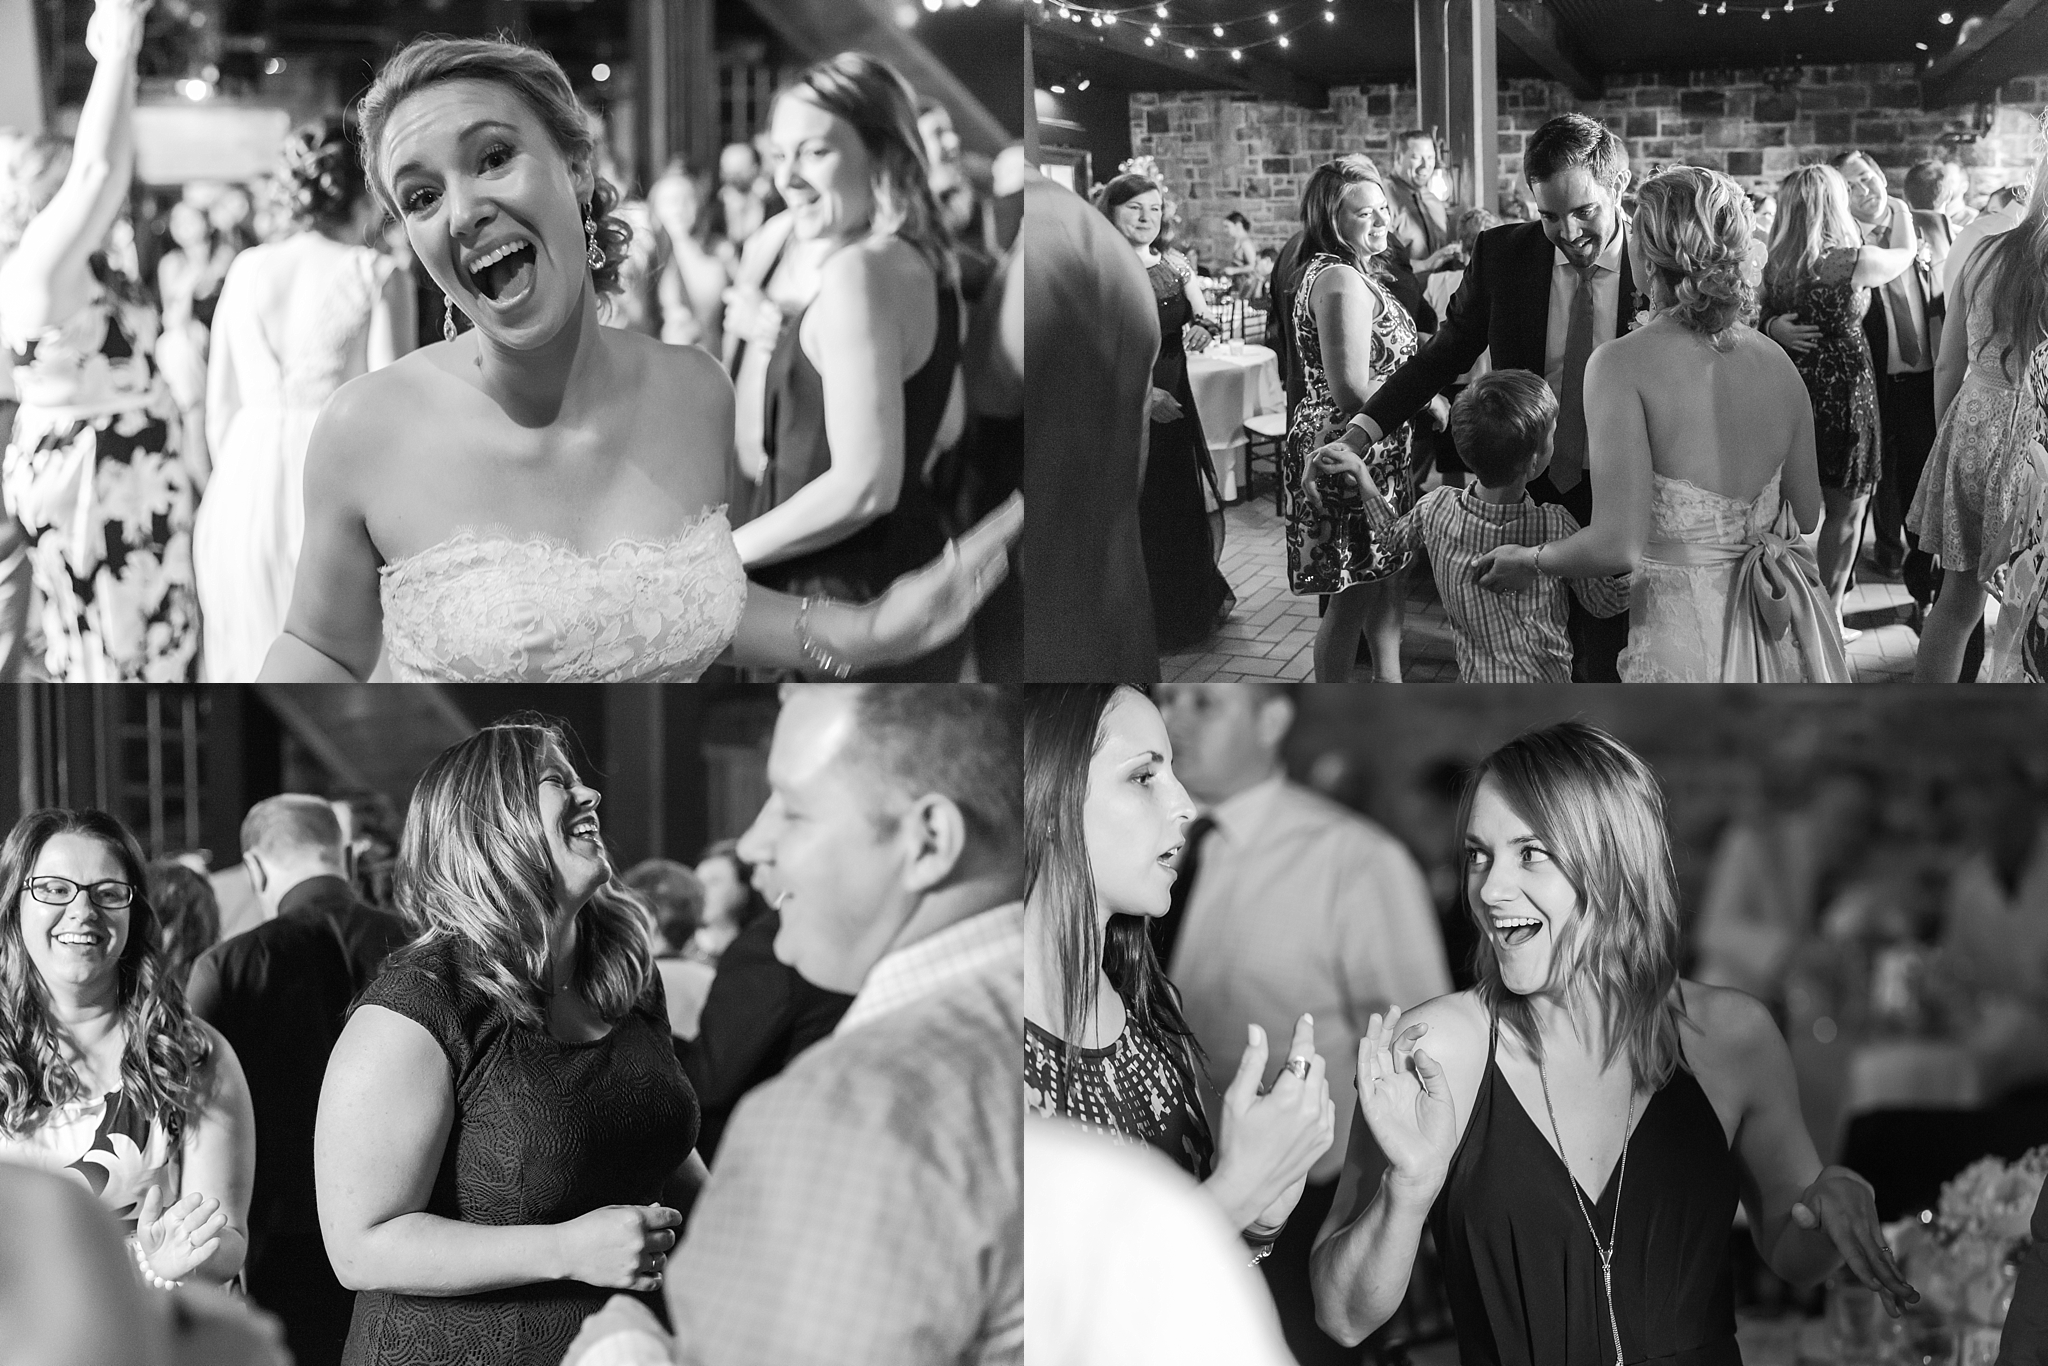 fun-candid-laid-back-wedding-photos-at-wellers-carriage-house-in-saline-michigan-and-at-the-eagle-crest-golf-resort-by-courtney-carolyn-photography_0096.jpg